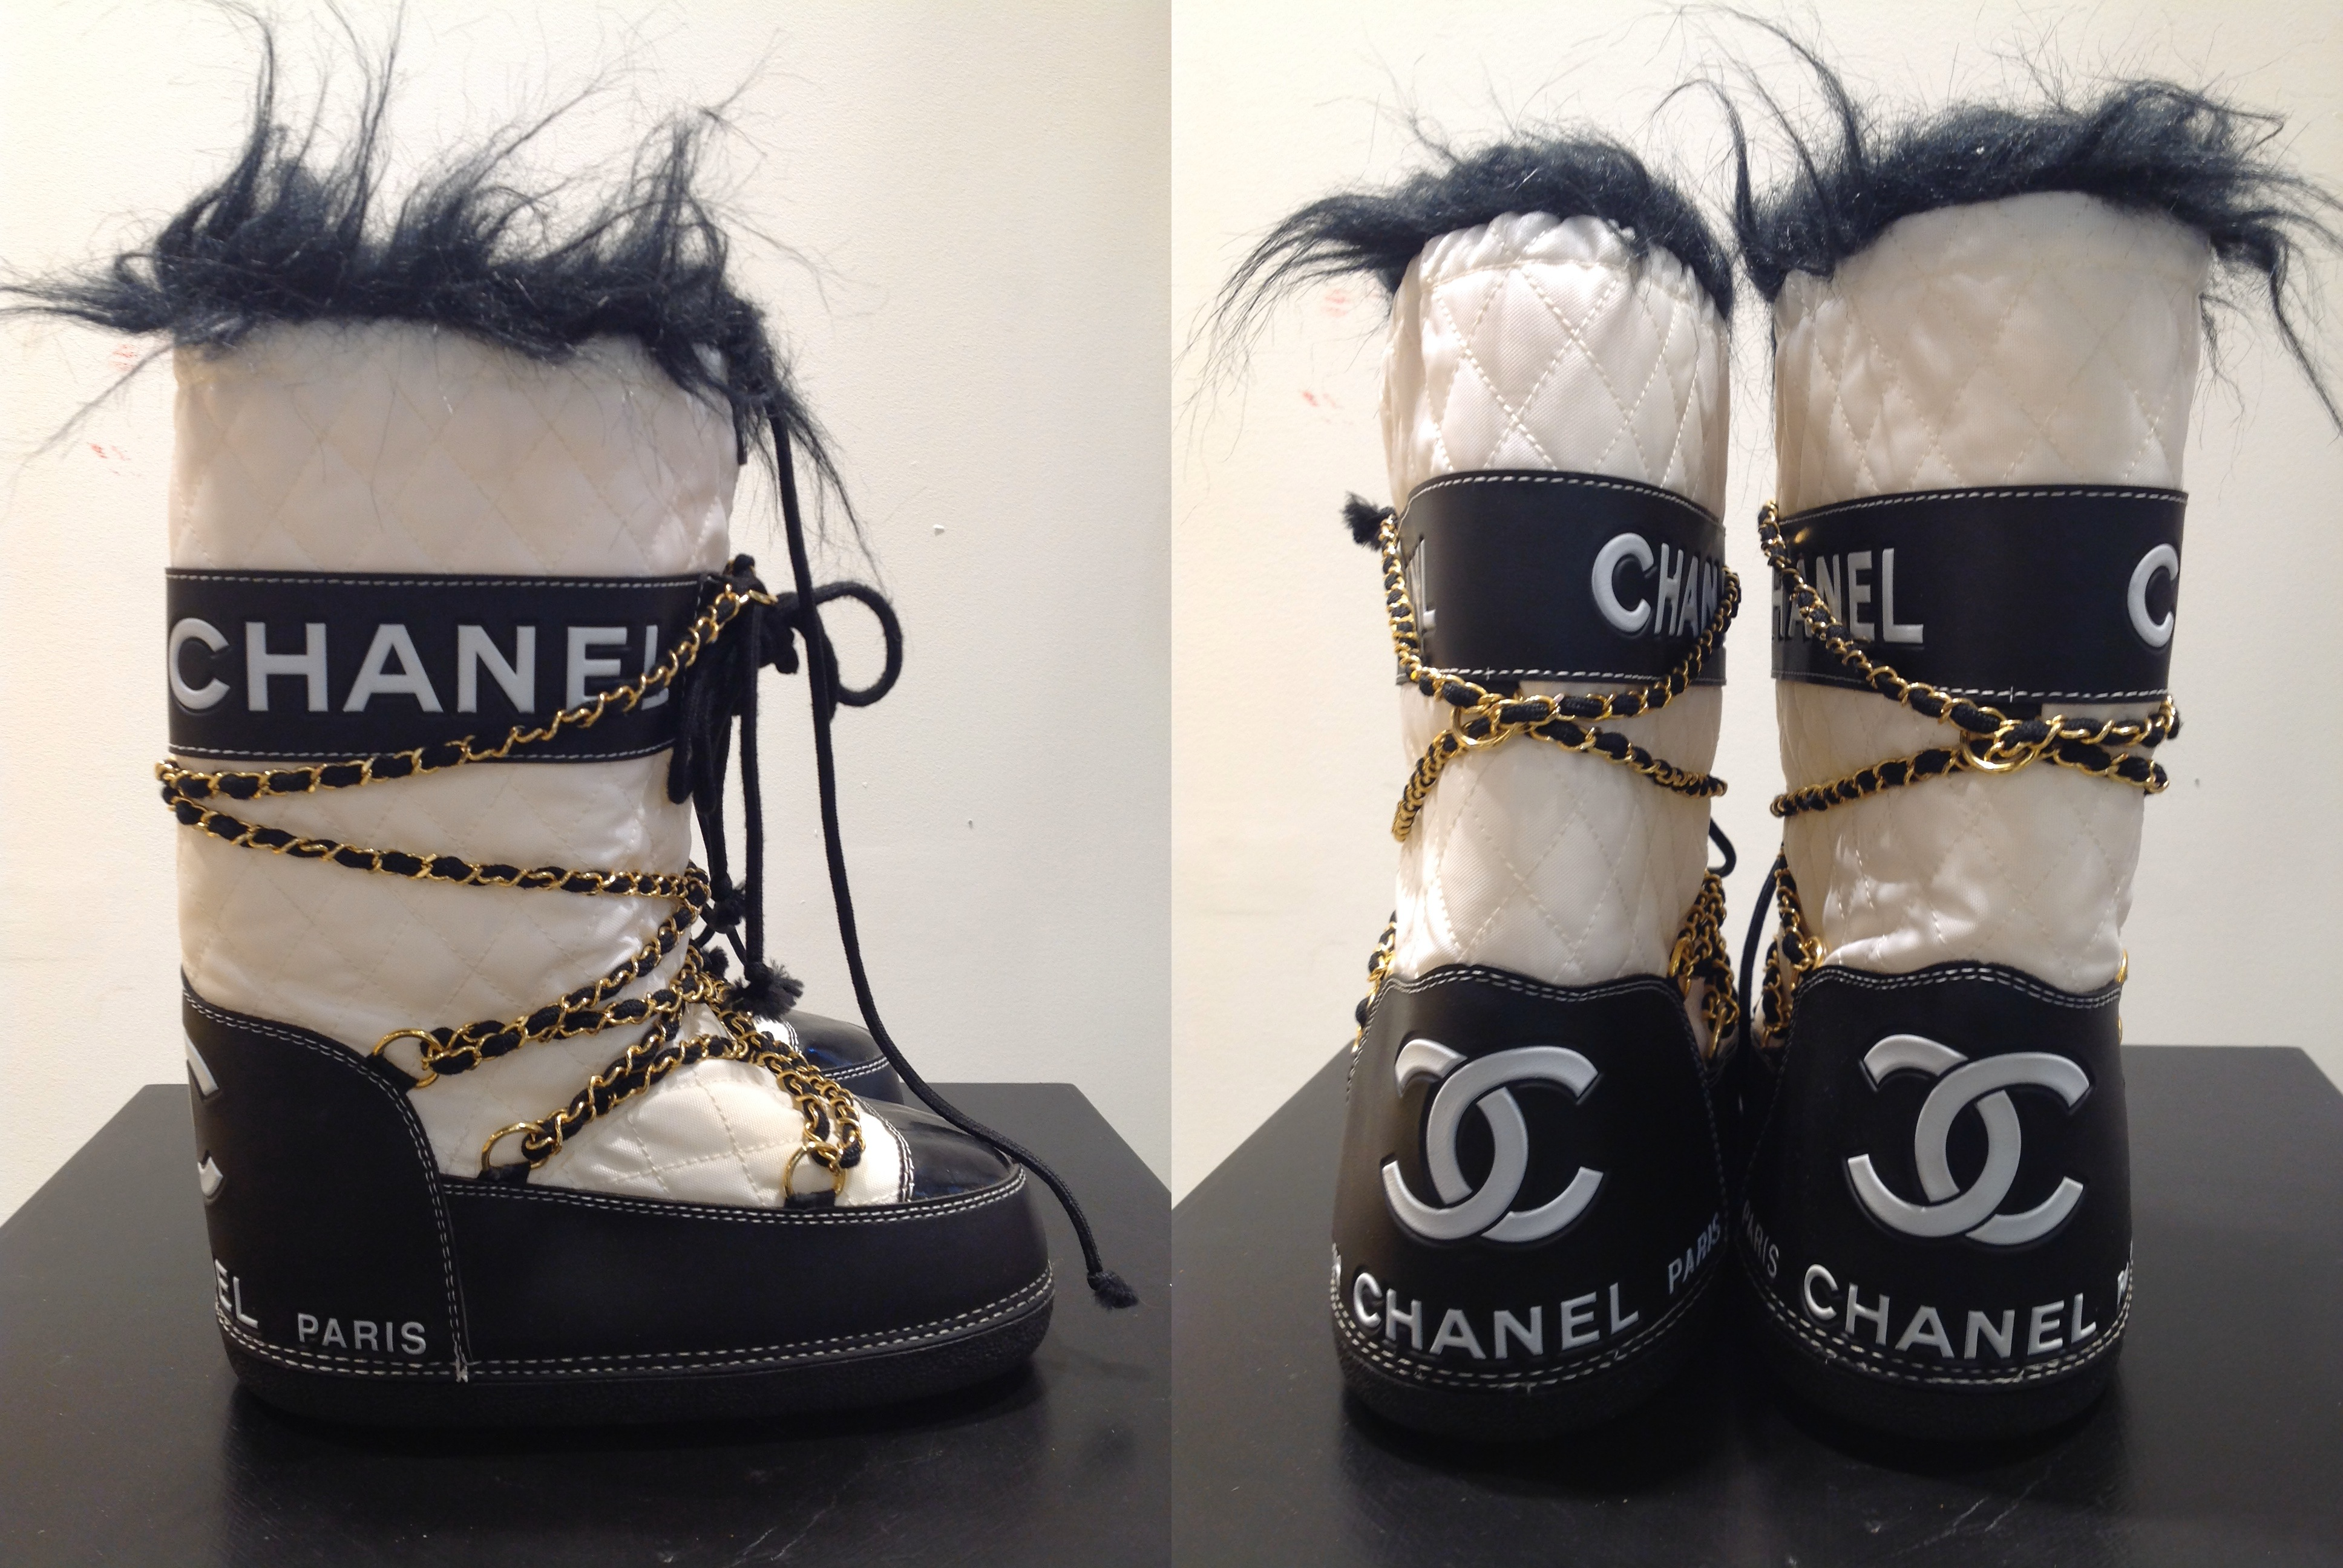 Hanna's Chanel Moonboots